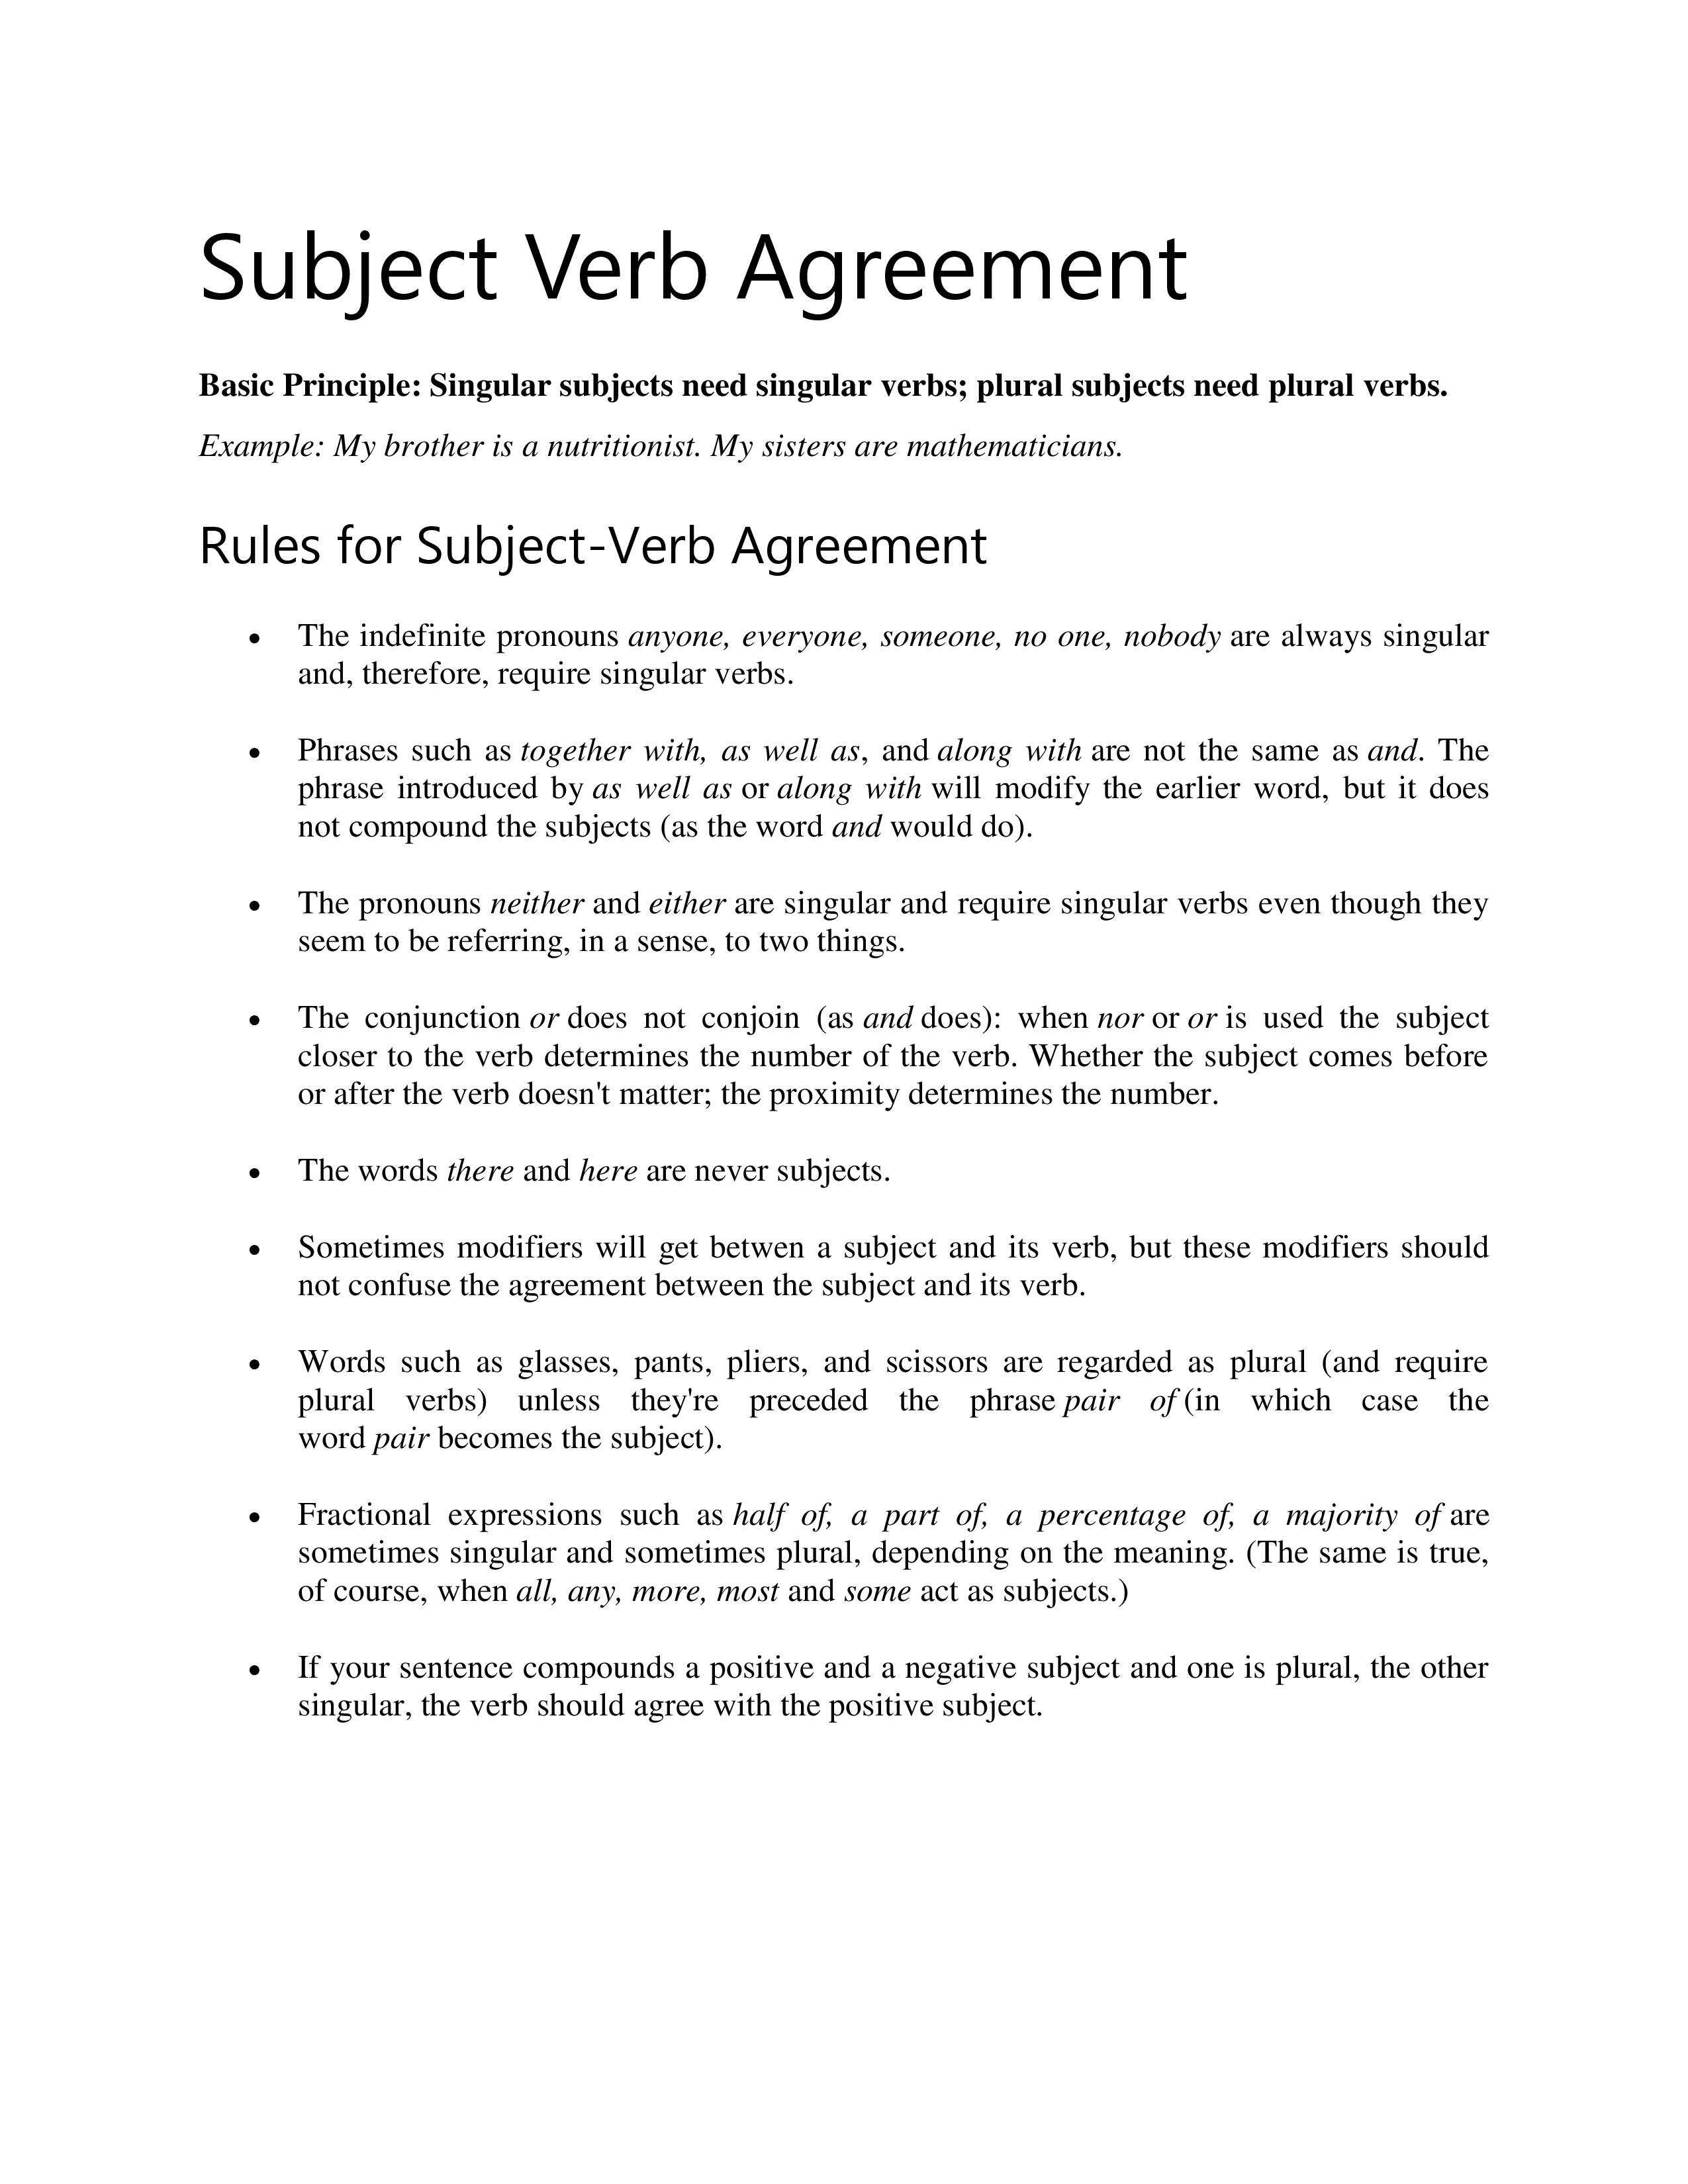 Subject Verb Agreement For Indefinite Pronouns Subject Verb Agreement Notes